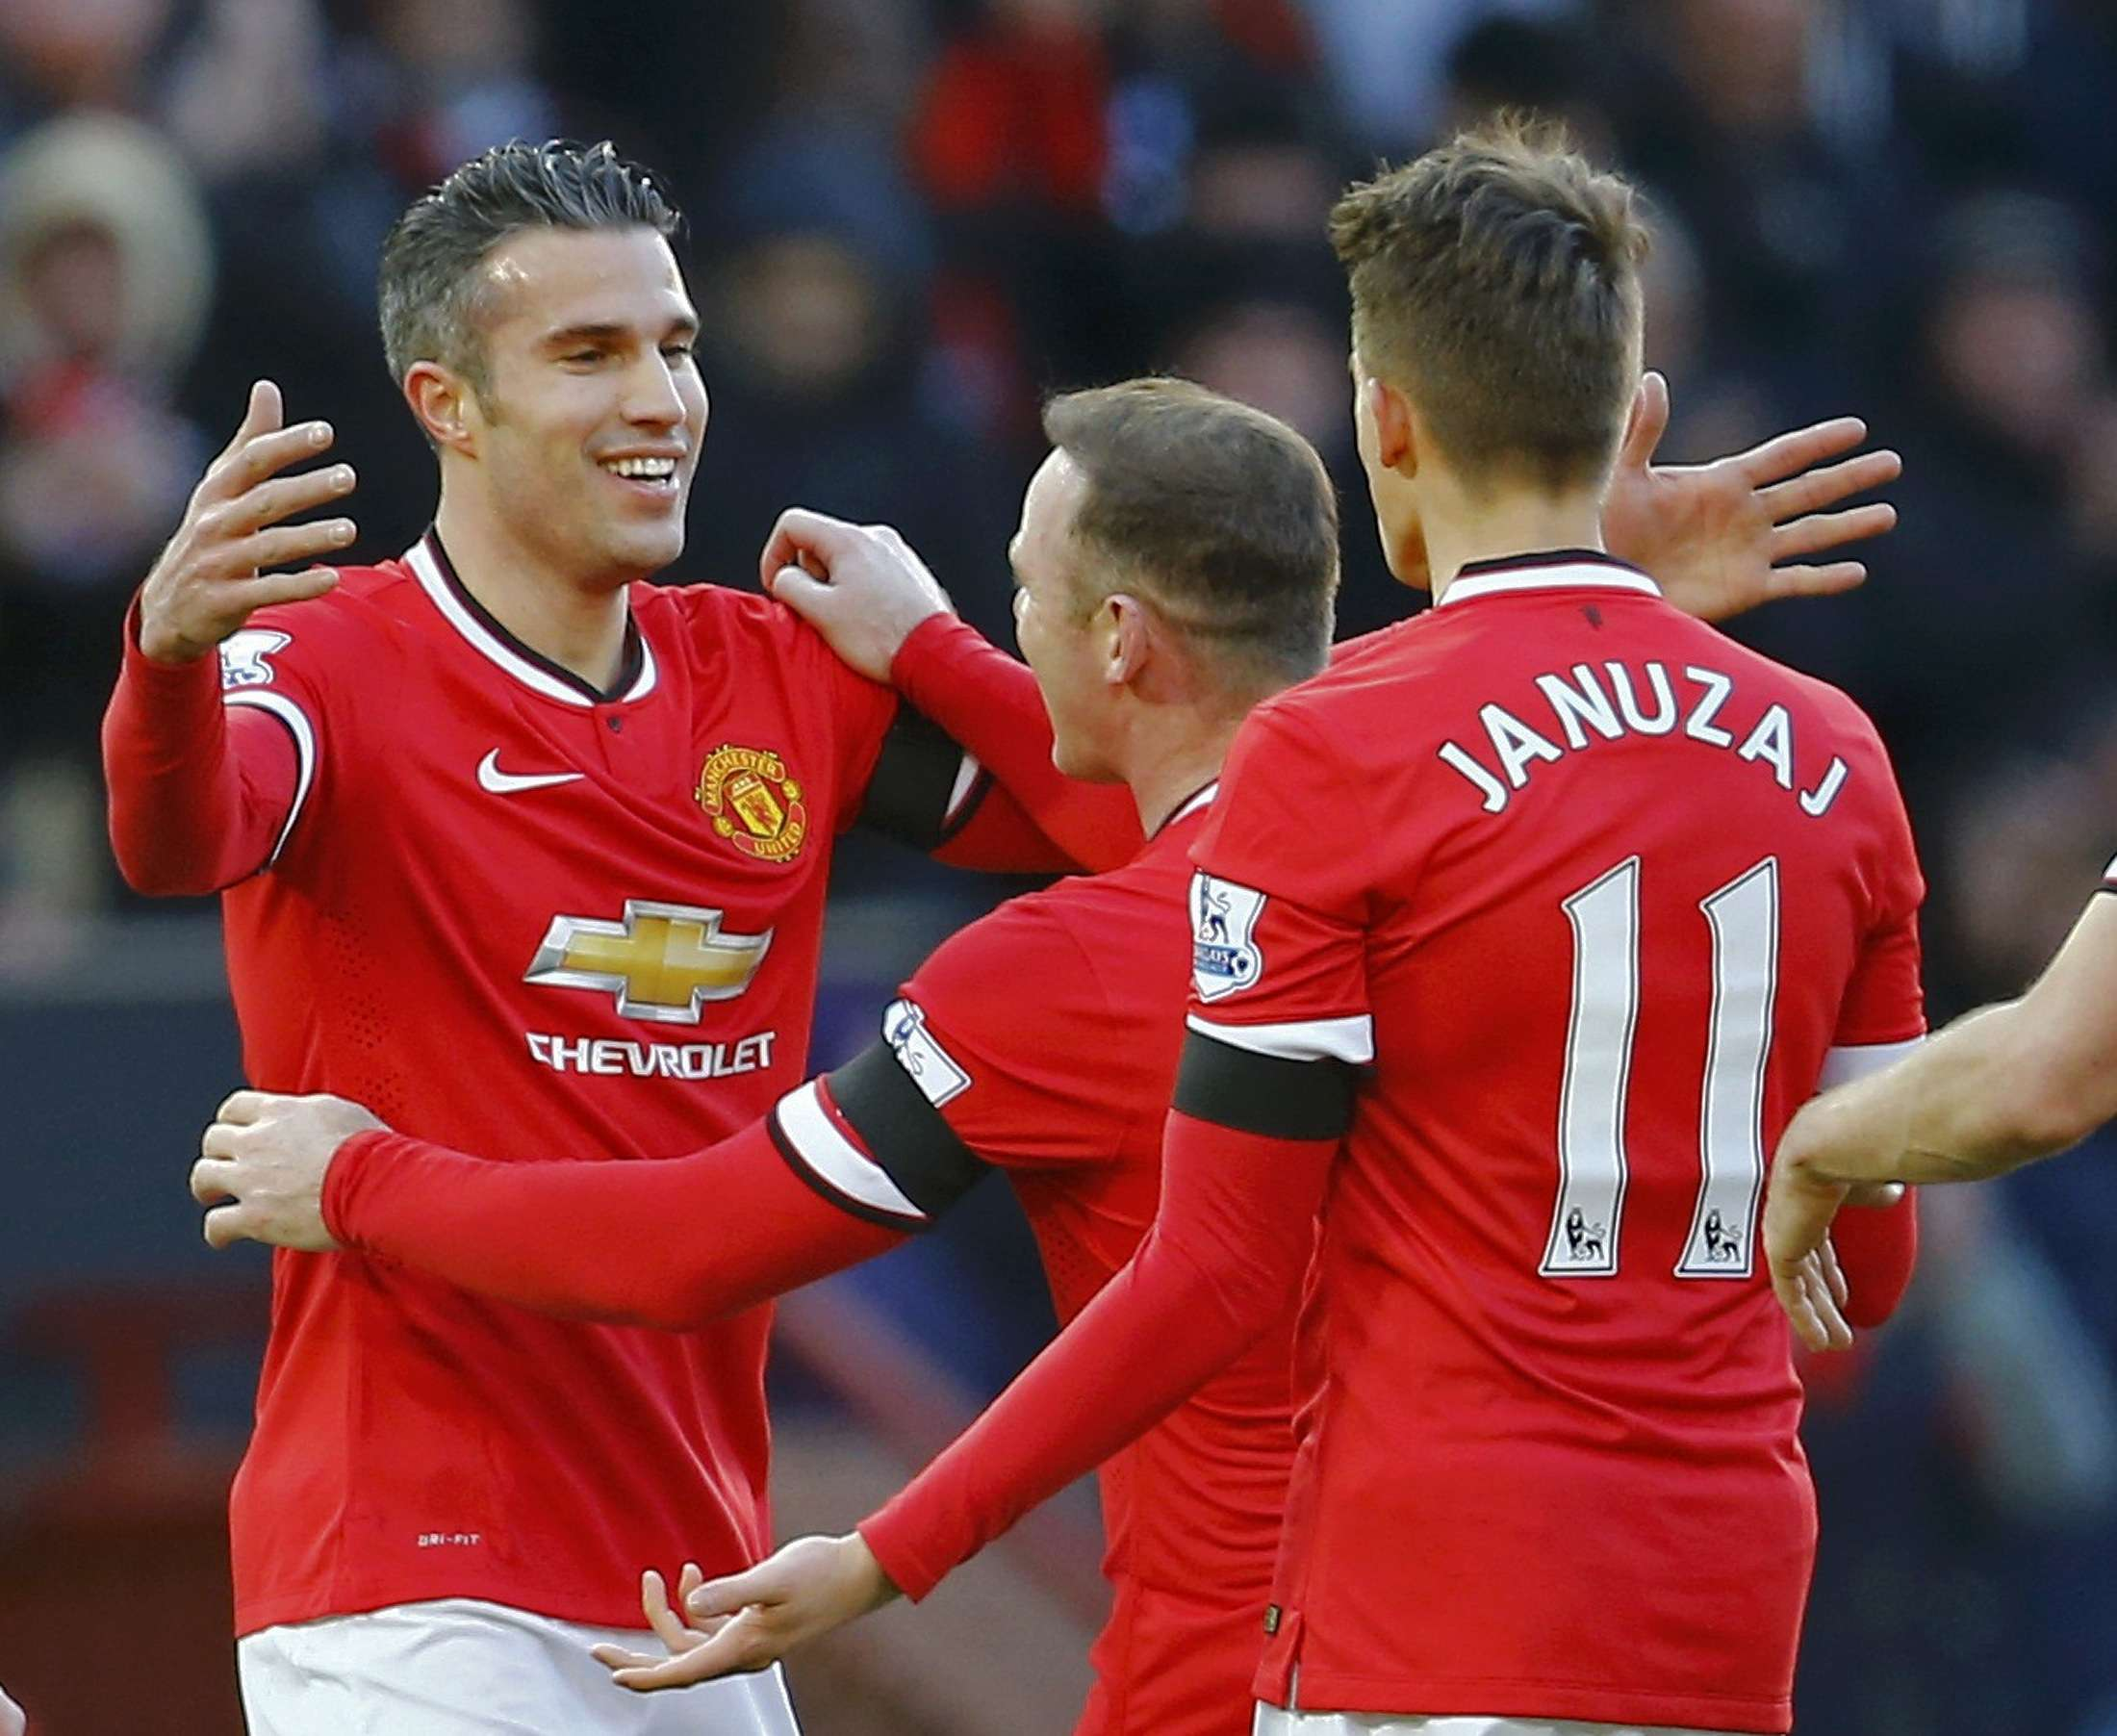 Manchester United's Robin van Persie (L) celebrates his goal with teammates Wayne Rooney and Adnan Januzaj (R) during their English Premier League soccer match against Leicester City at Old Trafford in Manchester, northern England January 31, 2015. REUTERS/Darren Staples (BRITAIN - Tags: SPORT SOCCER) EDITORIAL USE ONLY. NO USE WITH UNAUTHORIZED AUDIO, VIDEO, DATA, FIXTURE LISTS, CLUB/LEAGUE LOGOS OR 'LIVE' SERVICES. ONLINE IN-MATCH USE LIMITED TO 45 IMAGES, NO VIDEO EMULATION. NO USE IN BETTING, GAMES OR SINGLE CLUB/LEAGUE/PLAYER PUBLICATIONS.FOR EDITORIAL USE ONLY. NOT FOR SALE FOR MARKETING OR ADVERTISING CAMPAIGNS. Foto: DARREN STAPLES/REUTERS